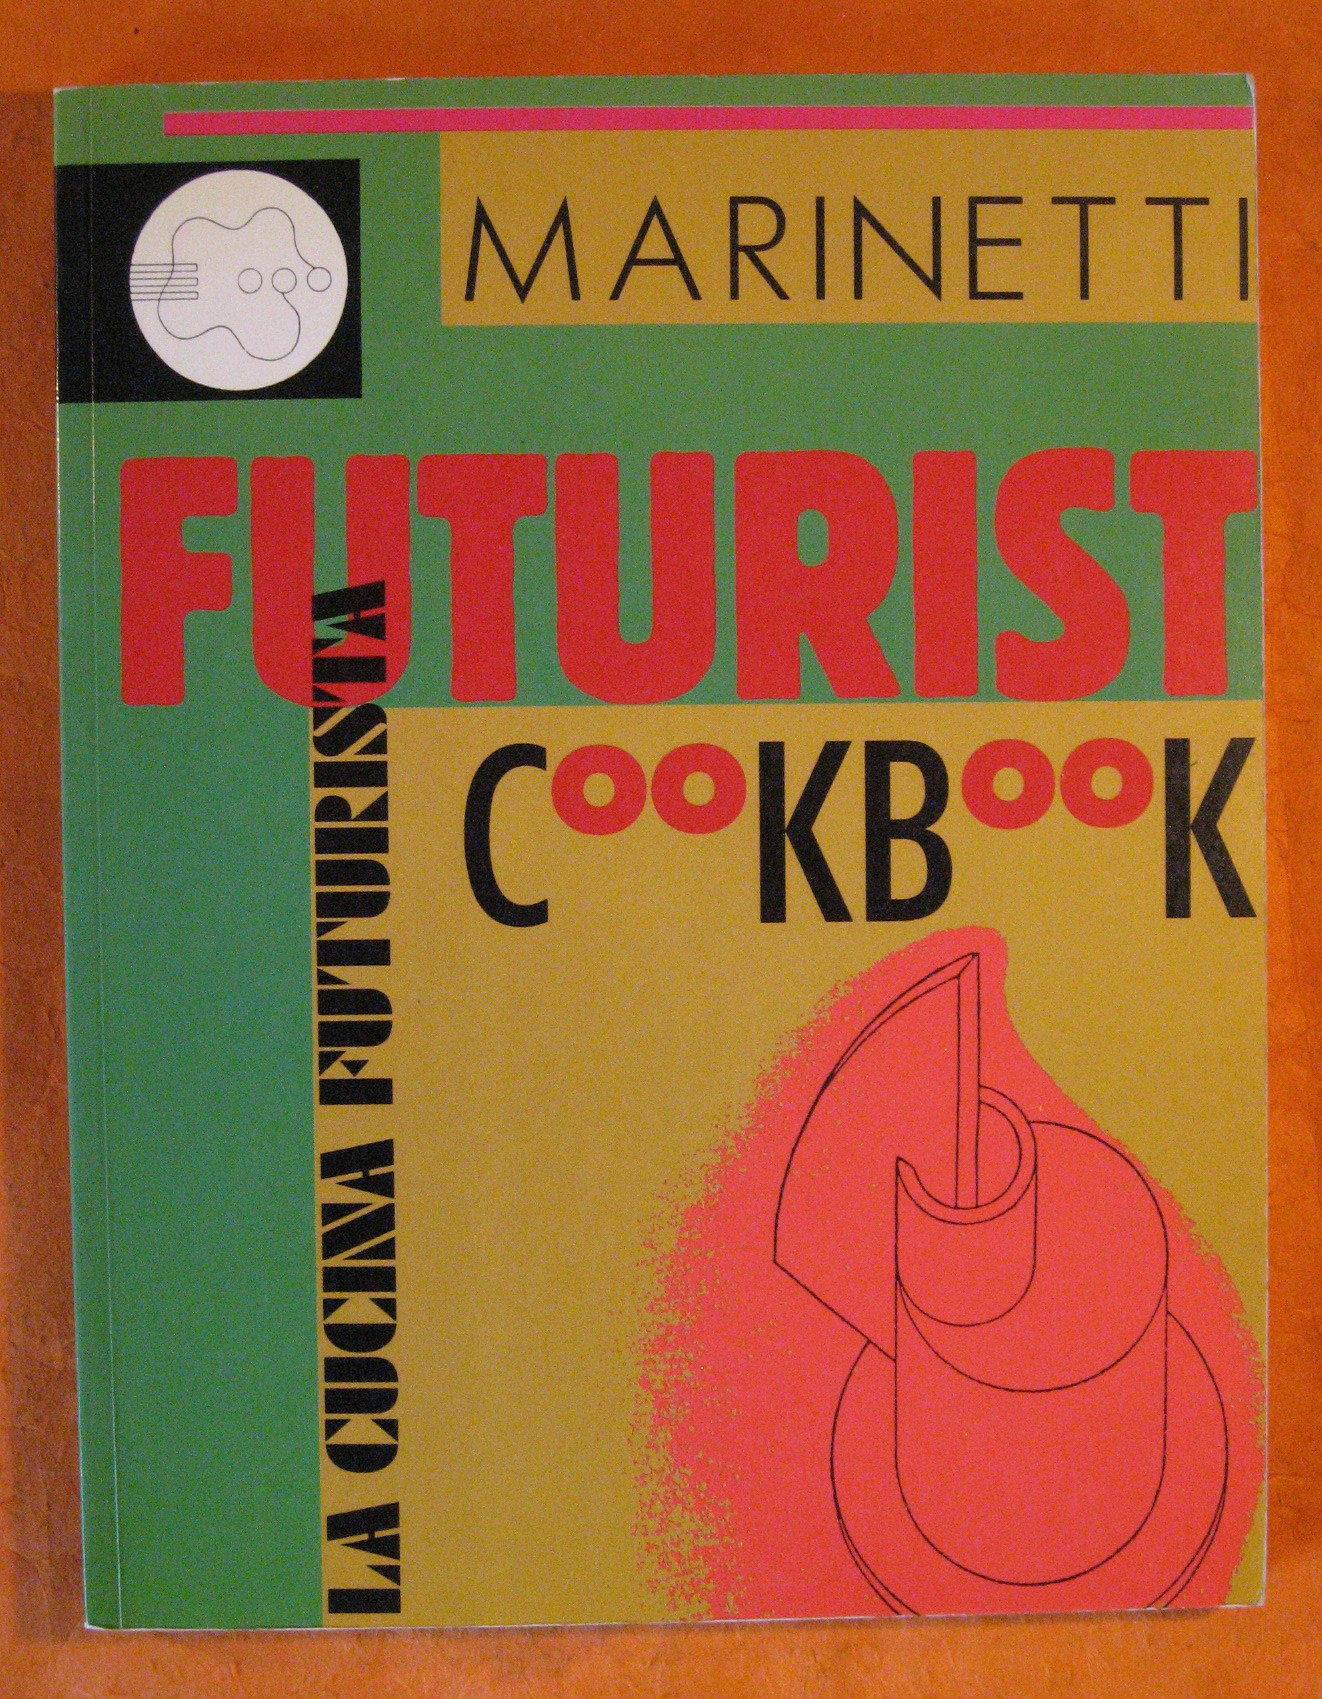 Futurist Cookbook / La Cucina Futurista, The, Marinetti, Filippo Tommaso